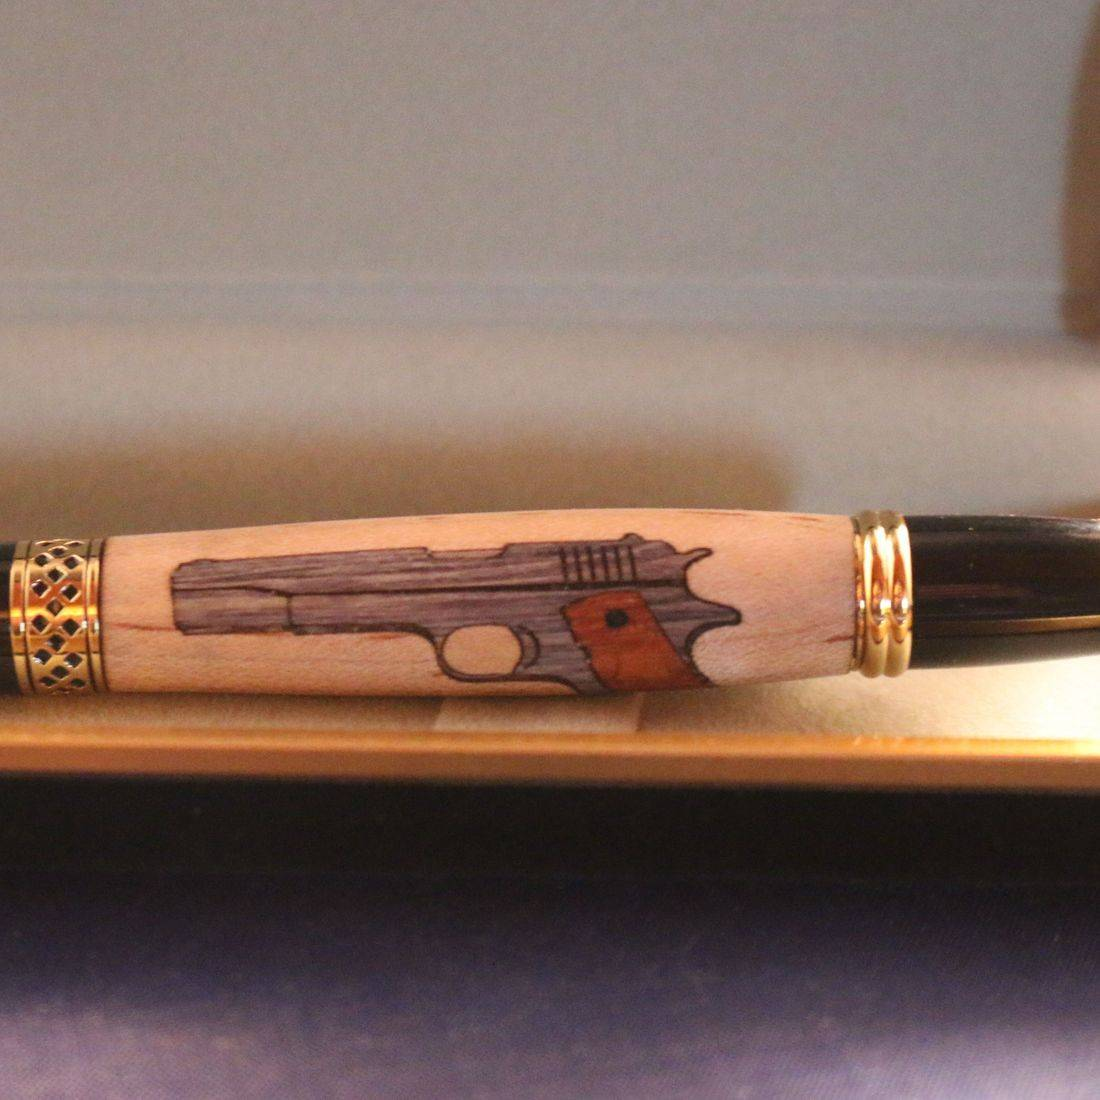 Pistol Inlay Mesa Pen